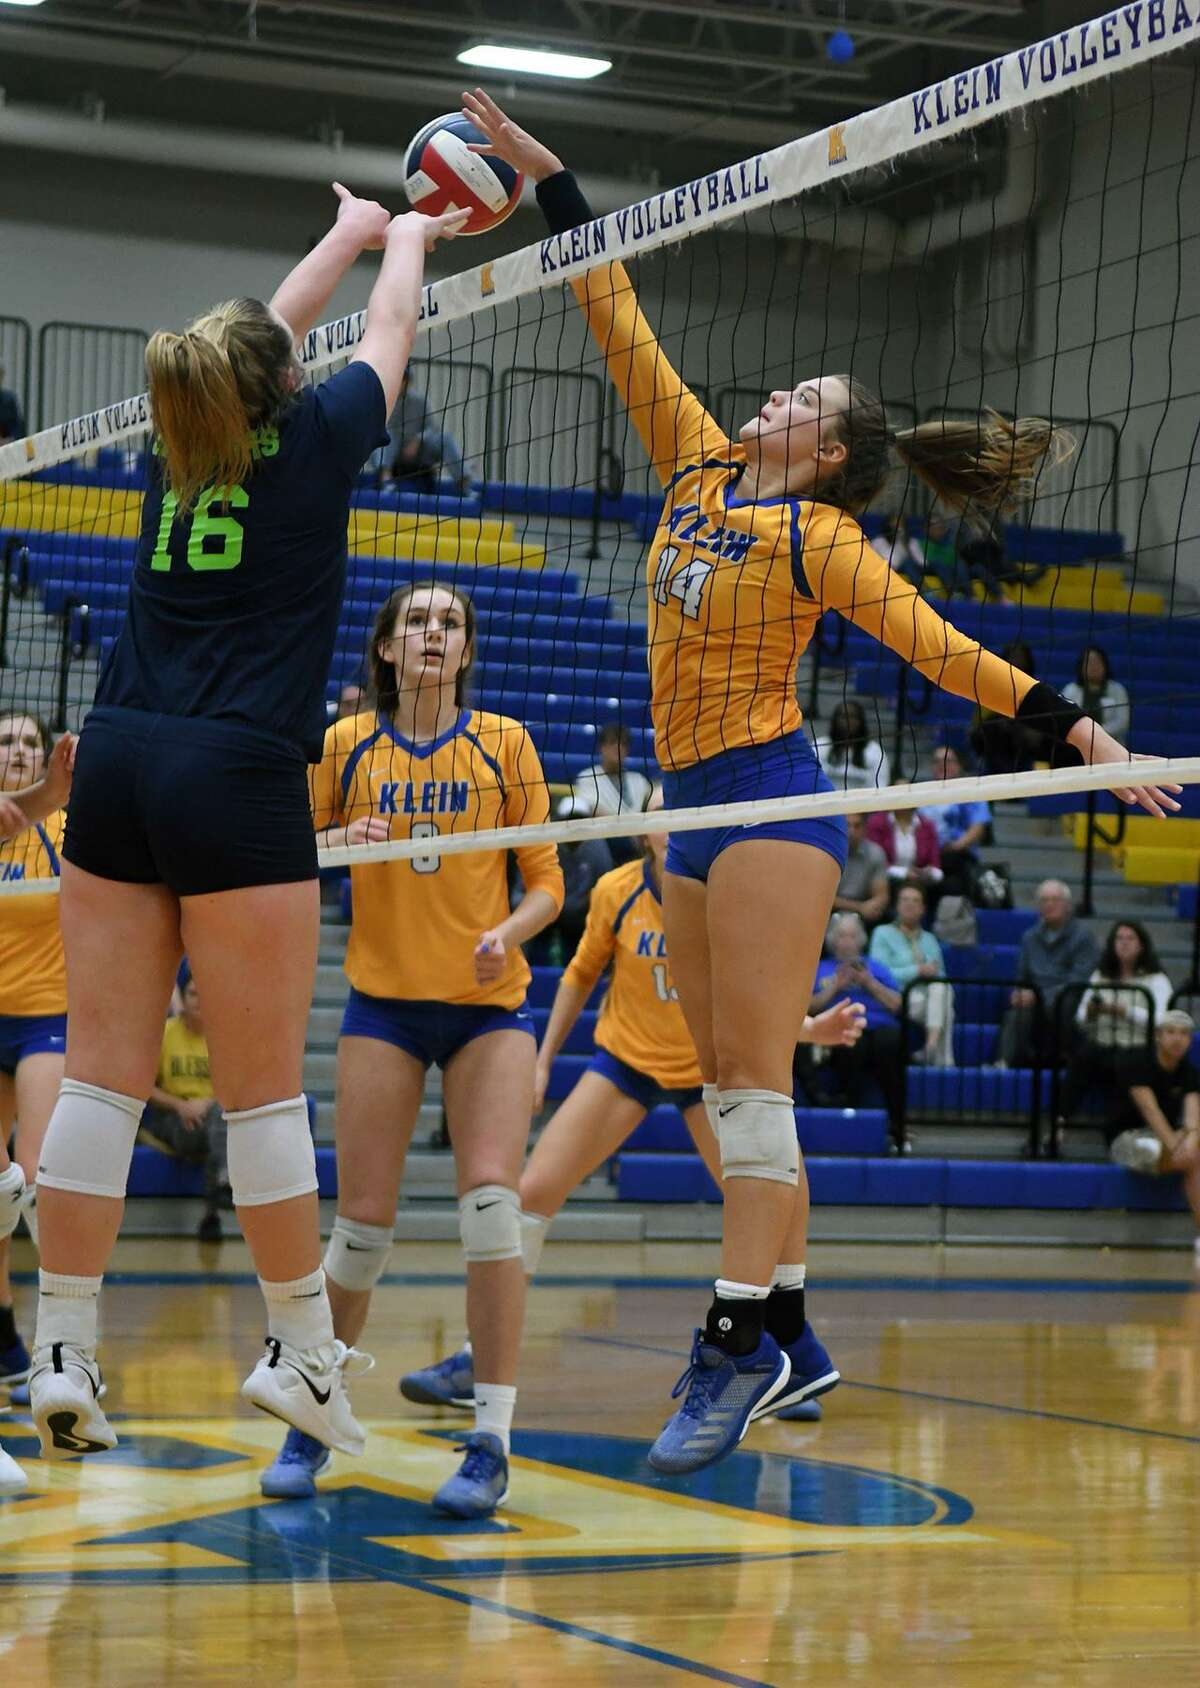 Klein senior outside hitter Baylee Laskoskie, right, was selected to the 2018 Texas Association of Volleyball Coaches Class 6A All-State volleyball team.